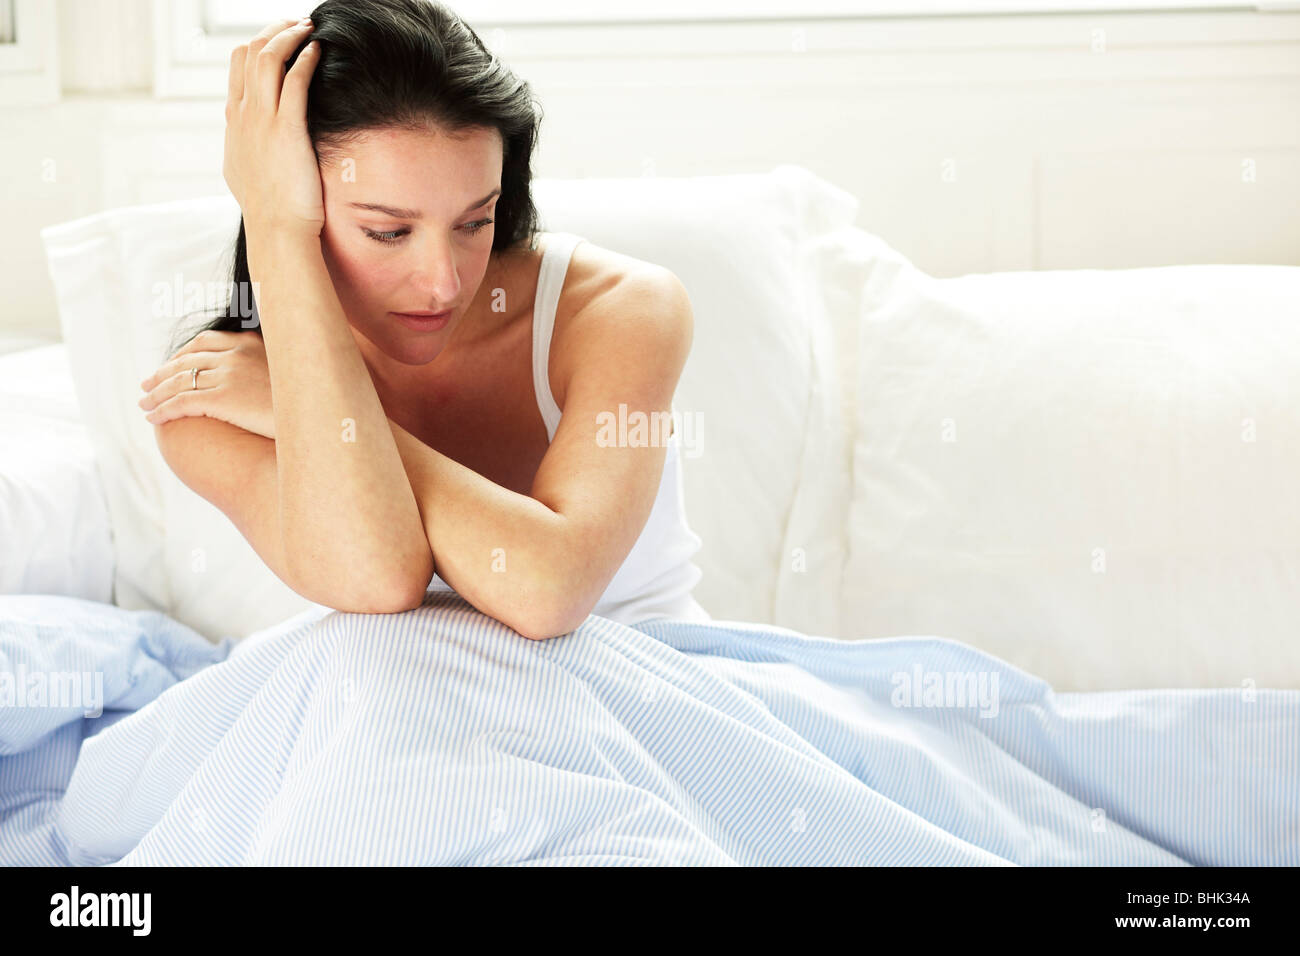 woman-sat-alone-in-bed-BHK34A.jpg